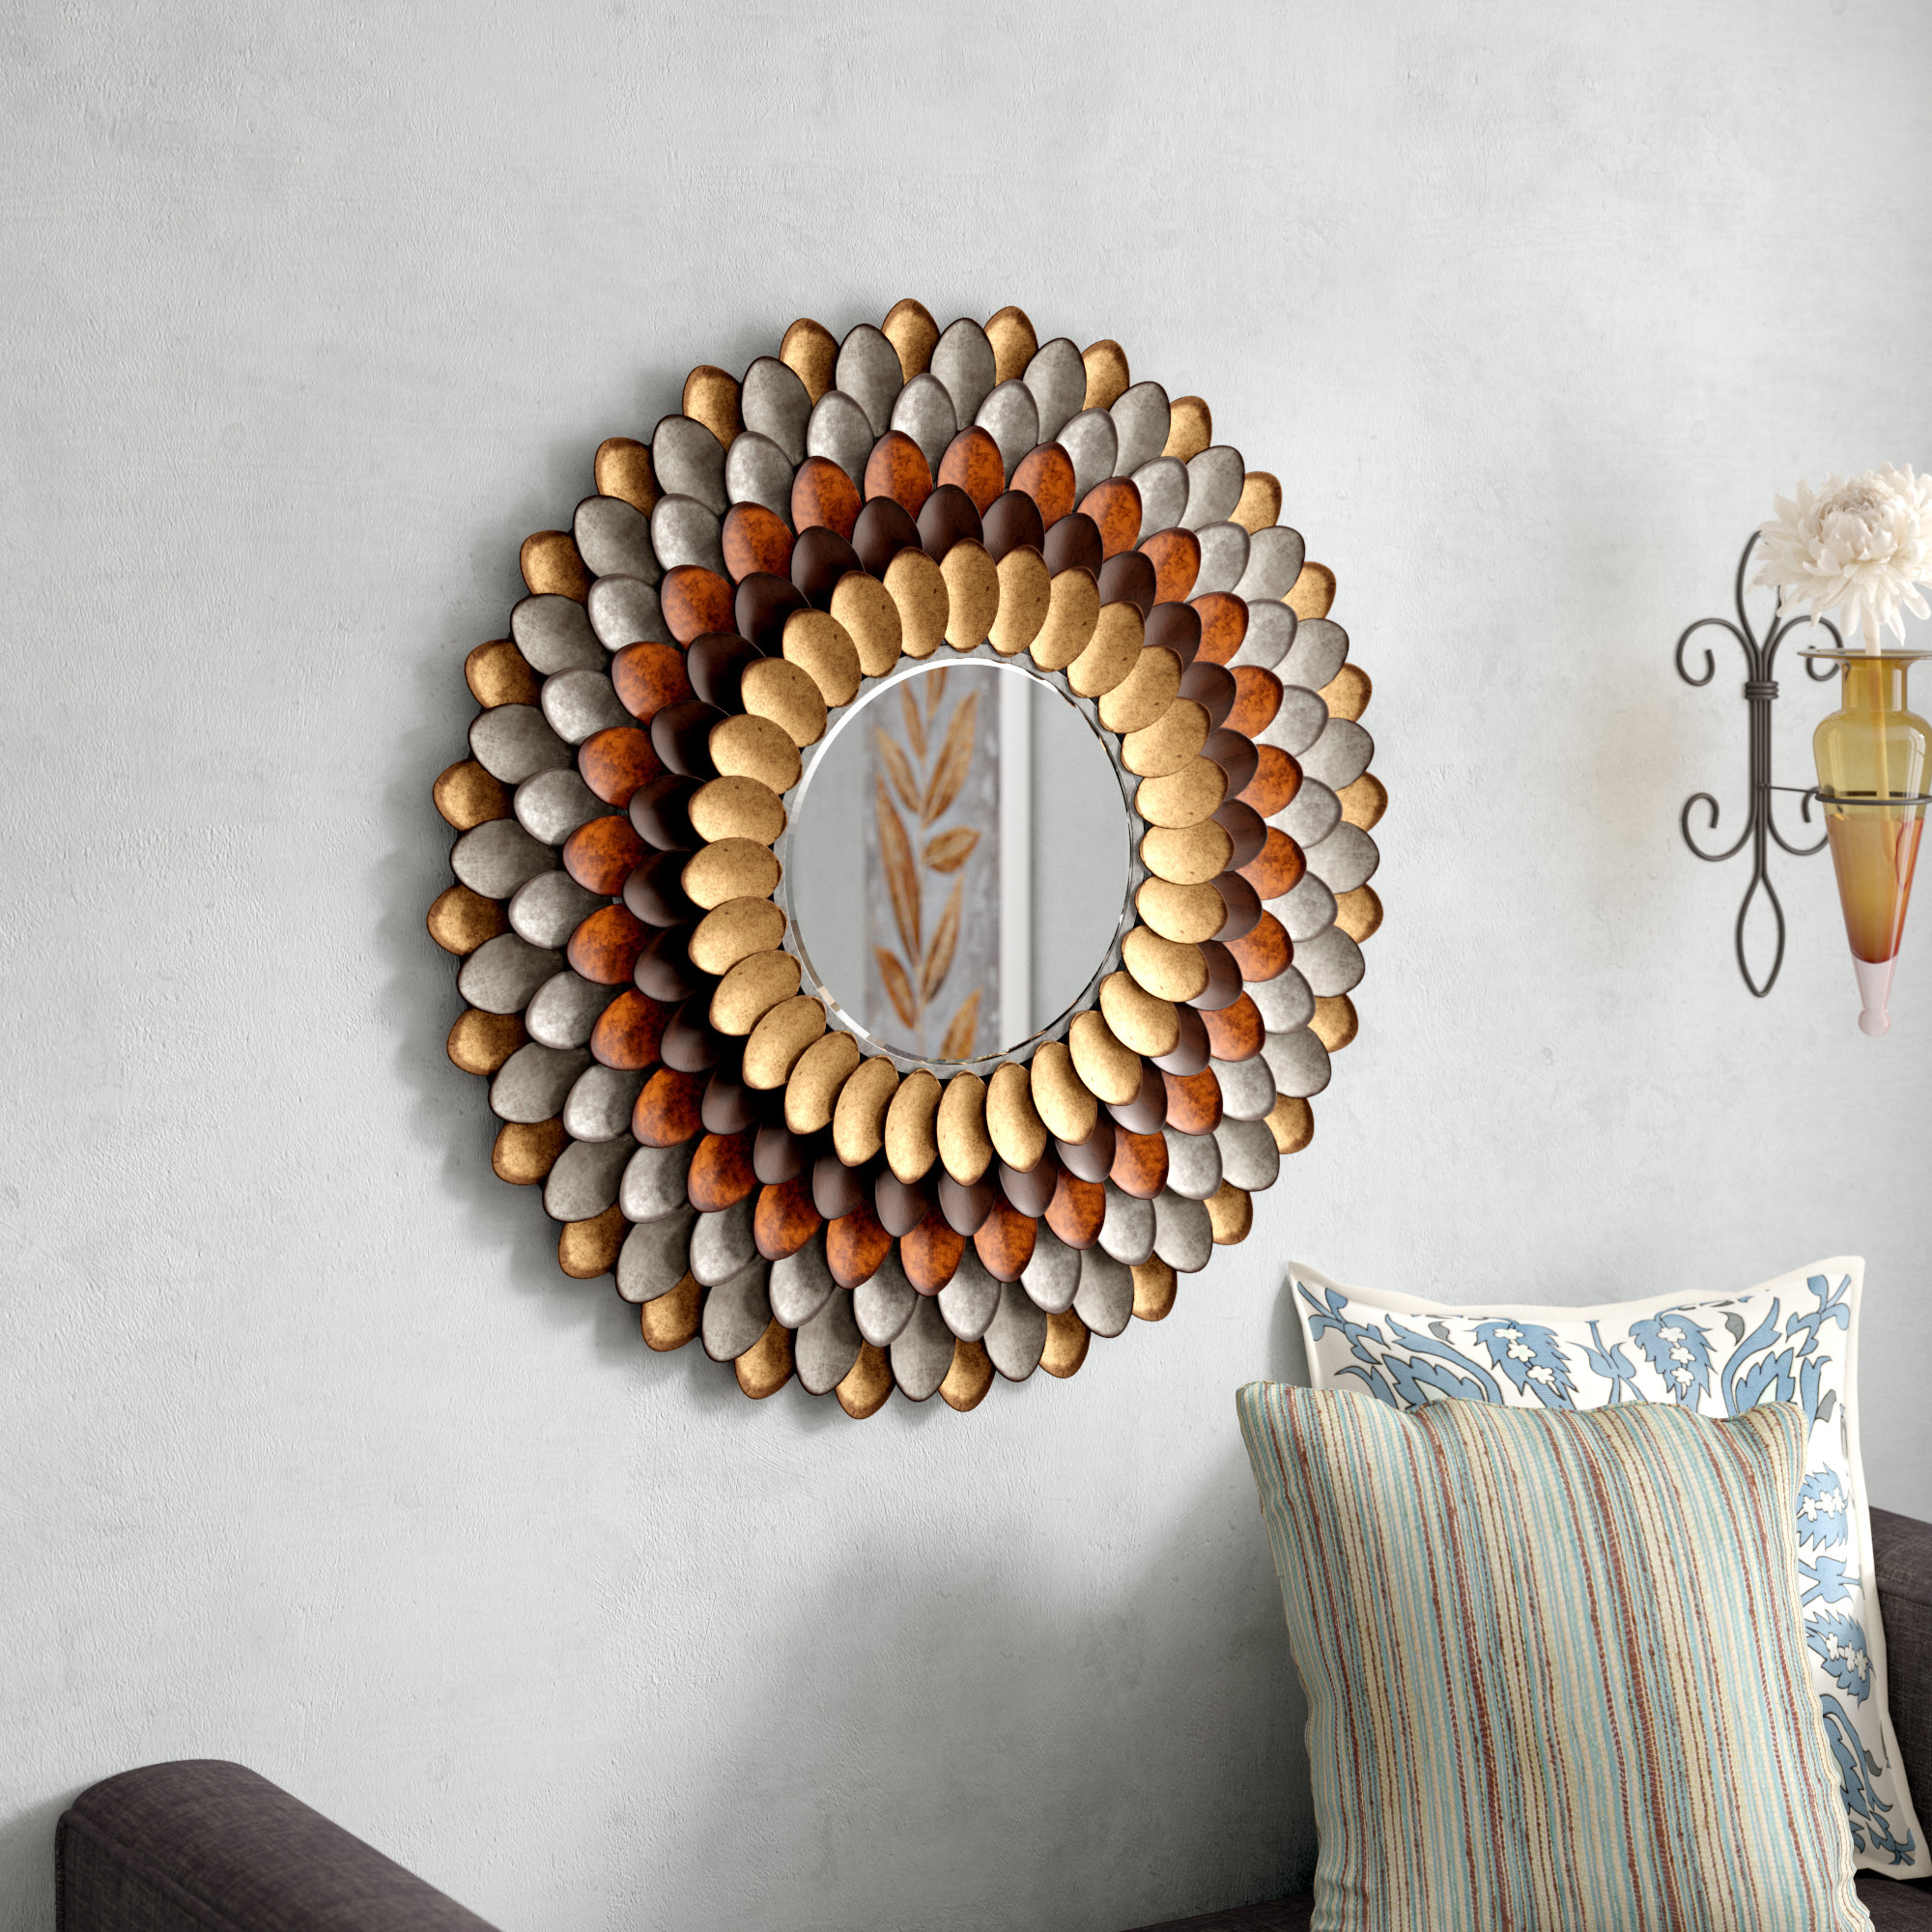 Hanging Wall Mirror | Wayfair With Regard To Bem Decorative Wall Mirrors (View 11 of 30)